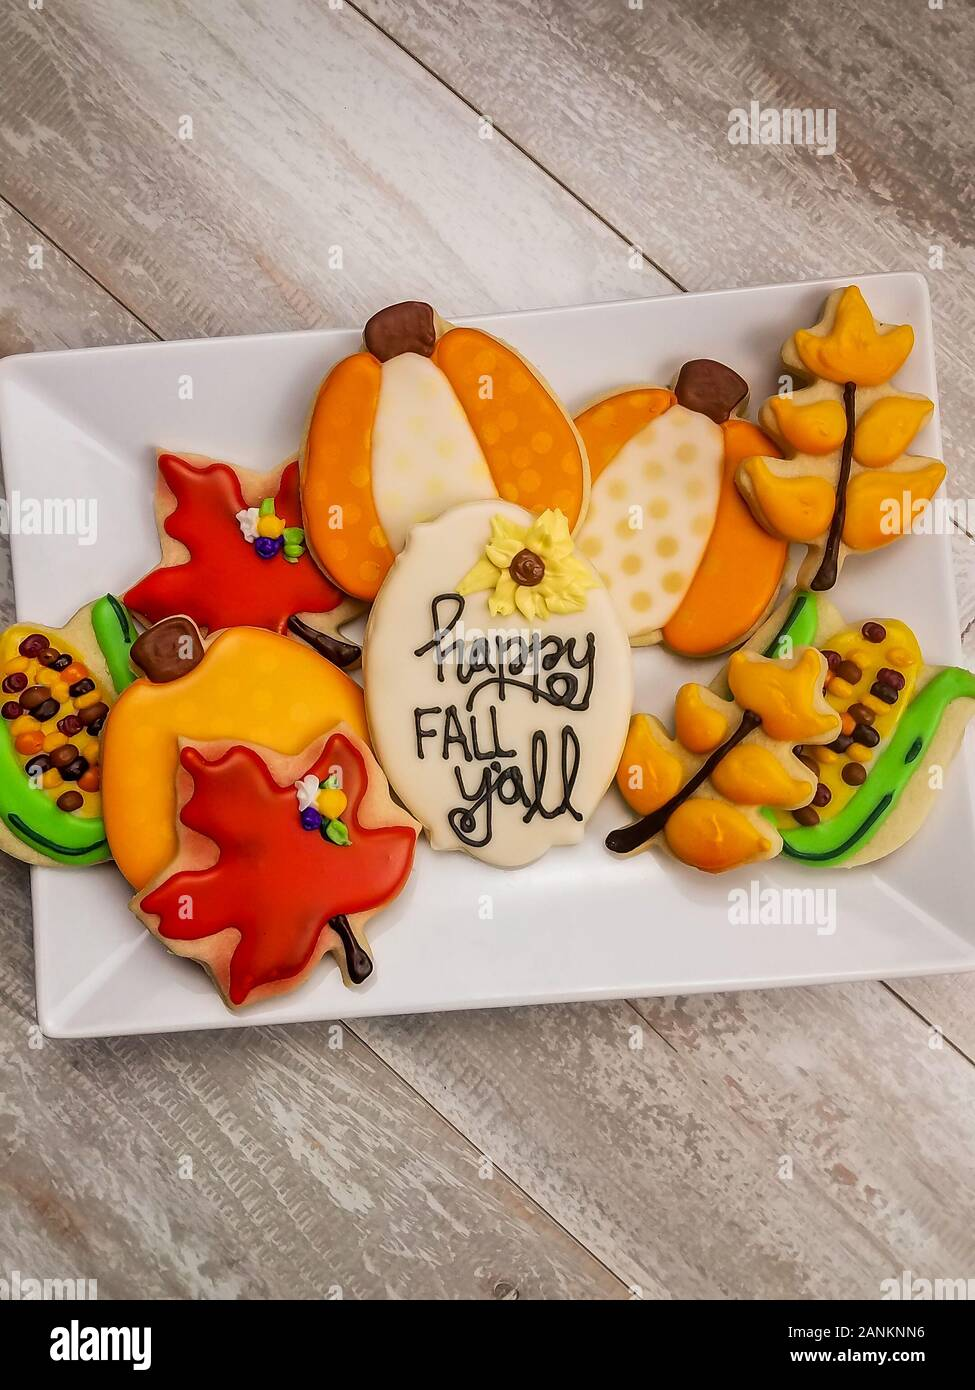 Seasonal Happy Fall Y All Sugar Cookie Platter Decorated To Celebrate The Season Stock Photo Alamy